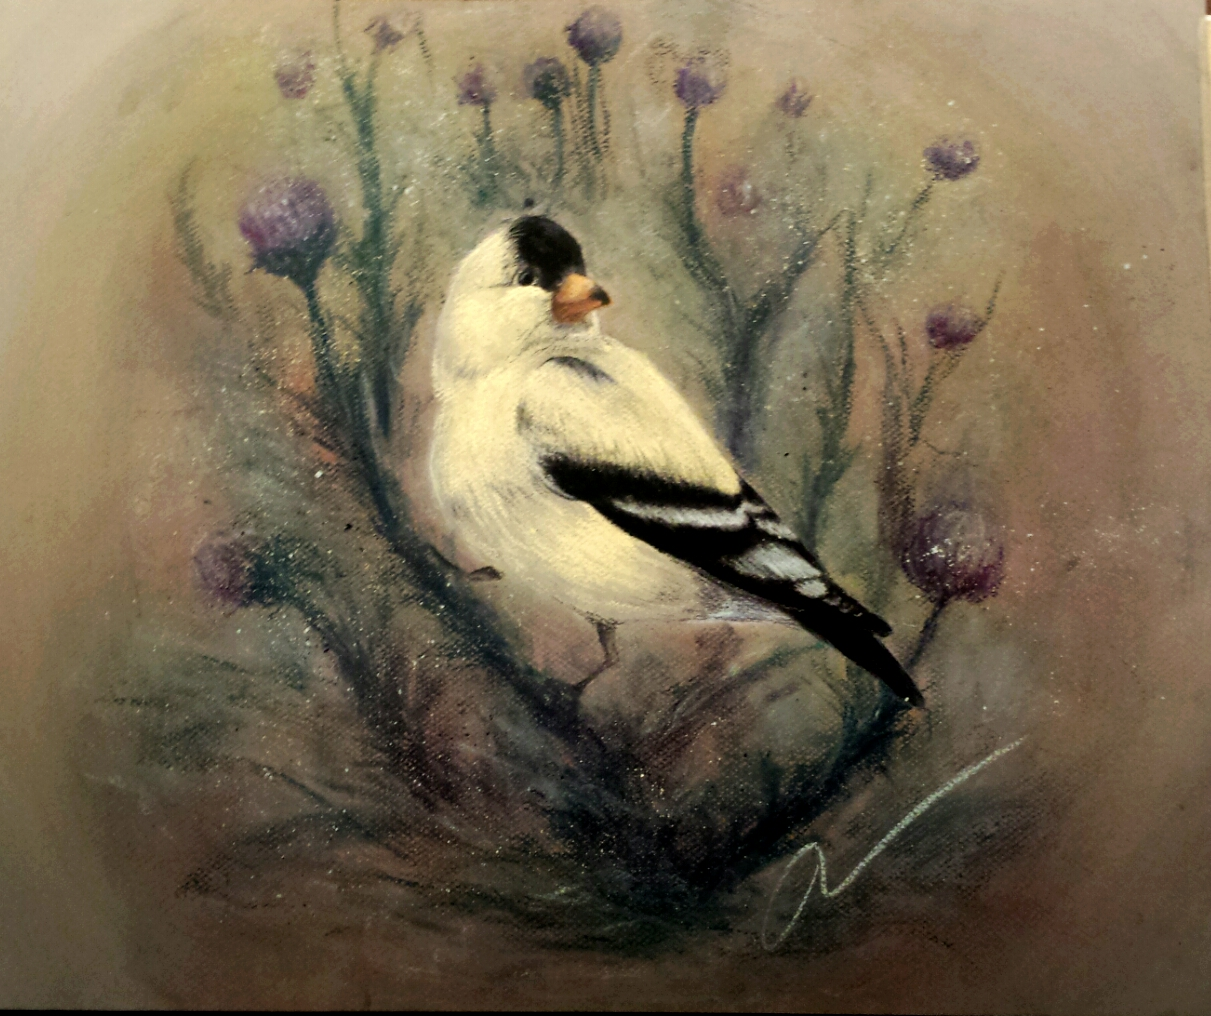 A pastel color drawing of a bird by Jess Wiley